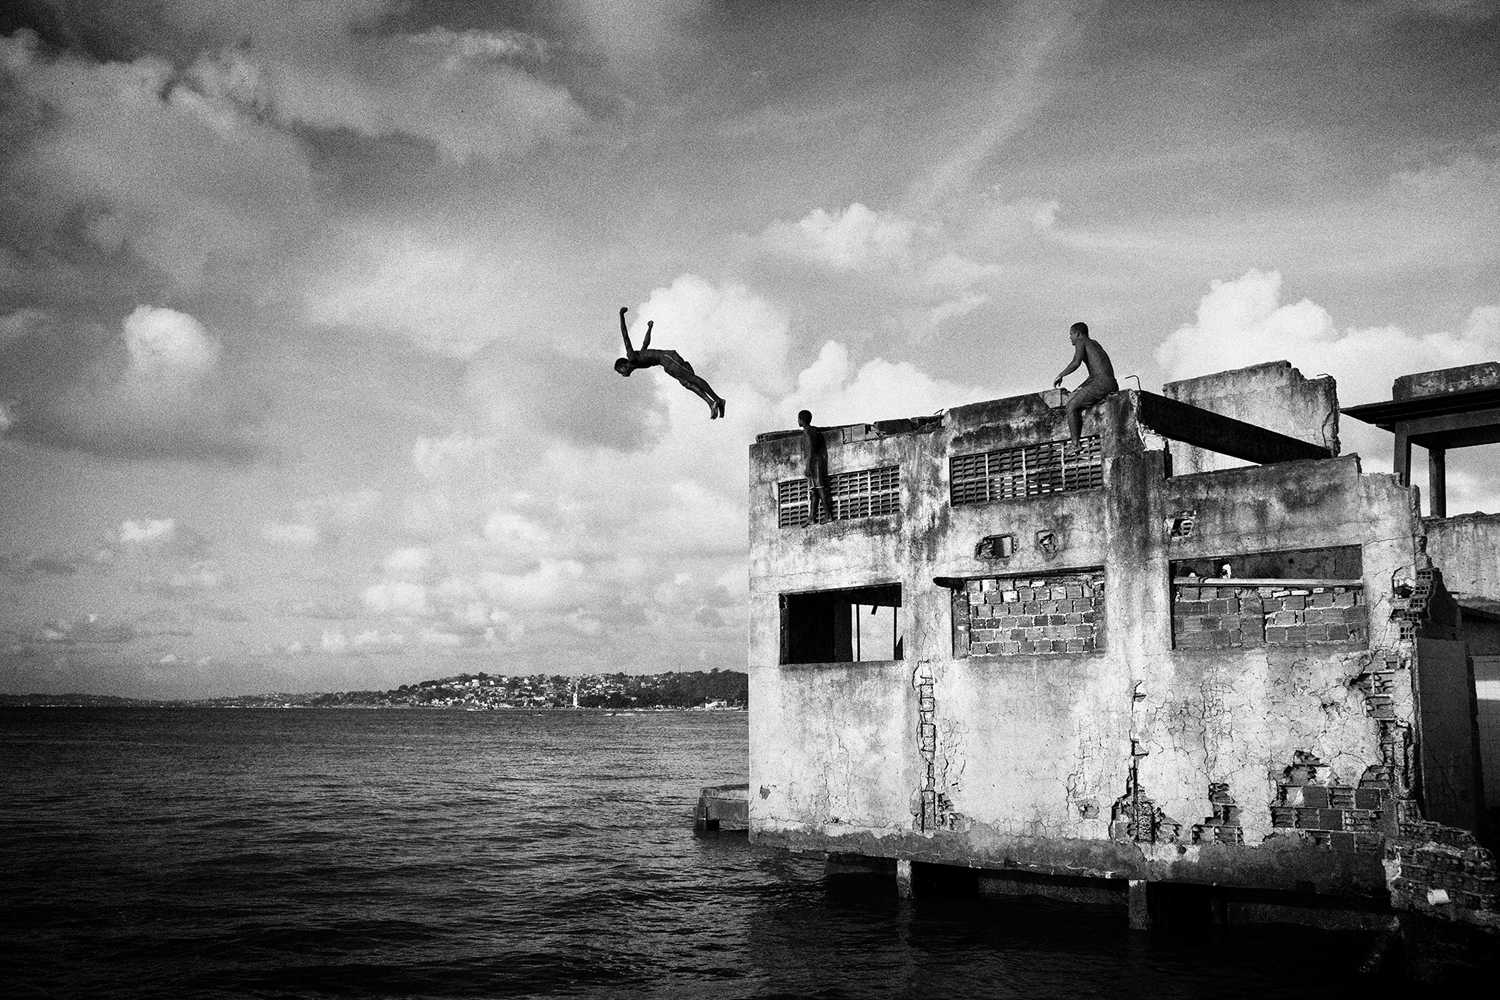 A boy jumping from a building of an abandoned chocolate factory, Salvador de Bahia, Brazil. March 20, 2011.